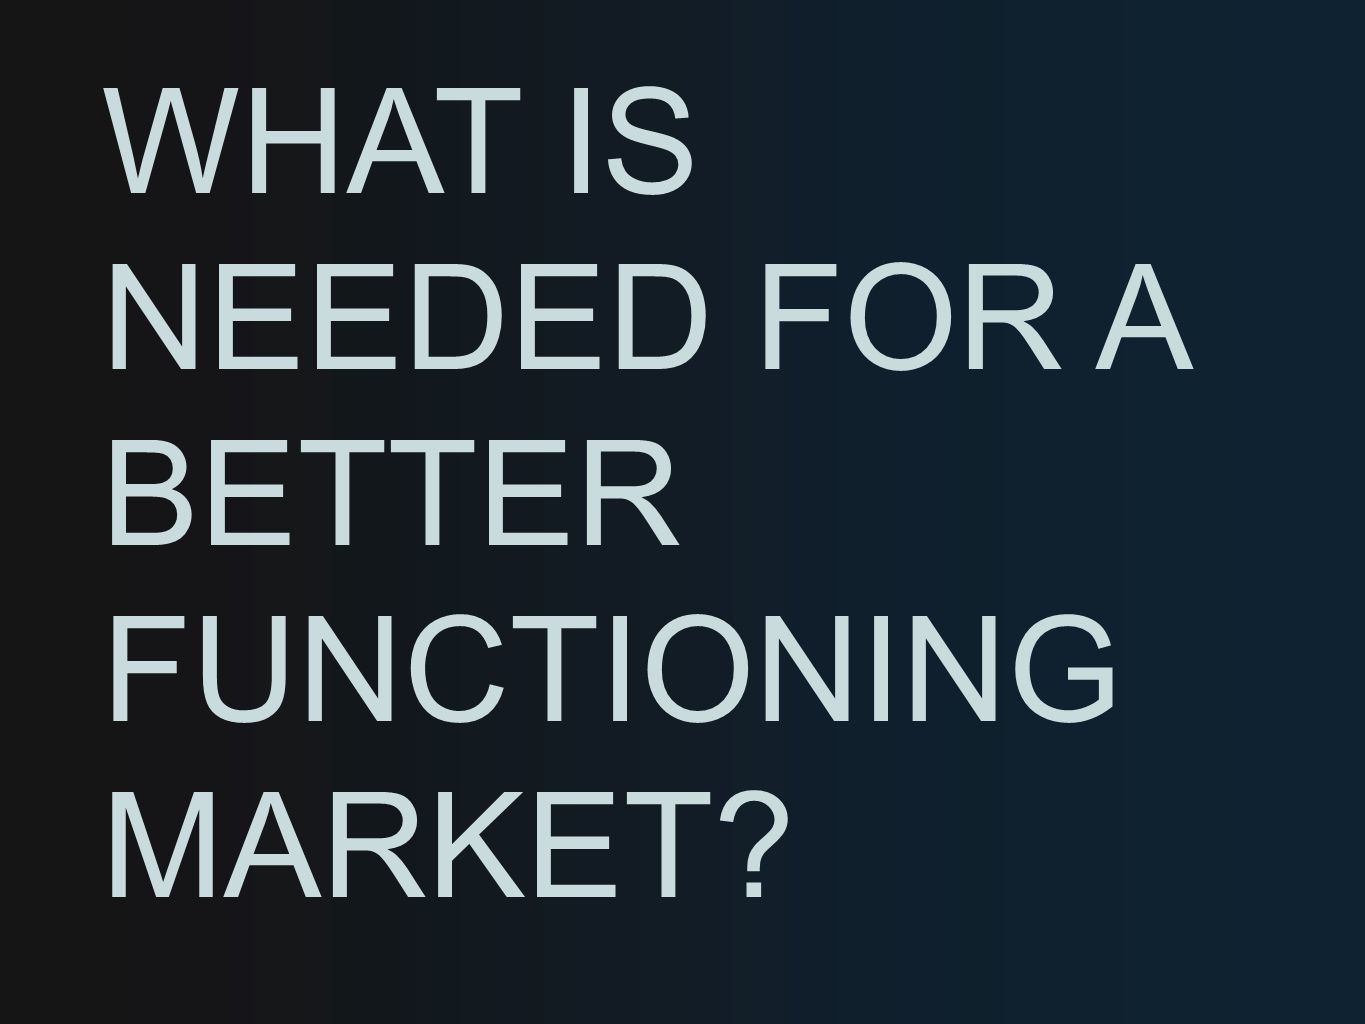 WHAT IS NEEDED FOR A BETTER FUNCTIONING MARKET?